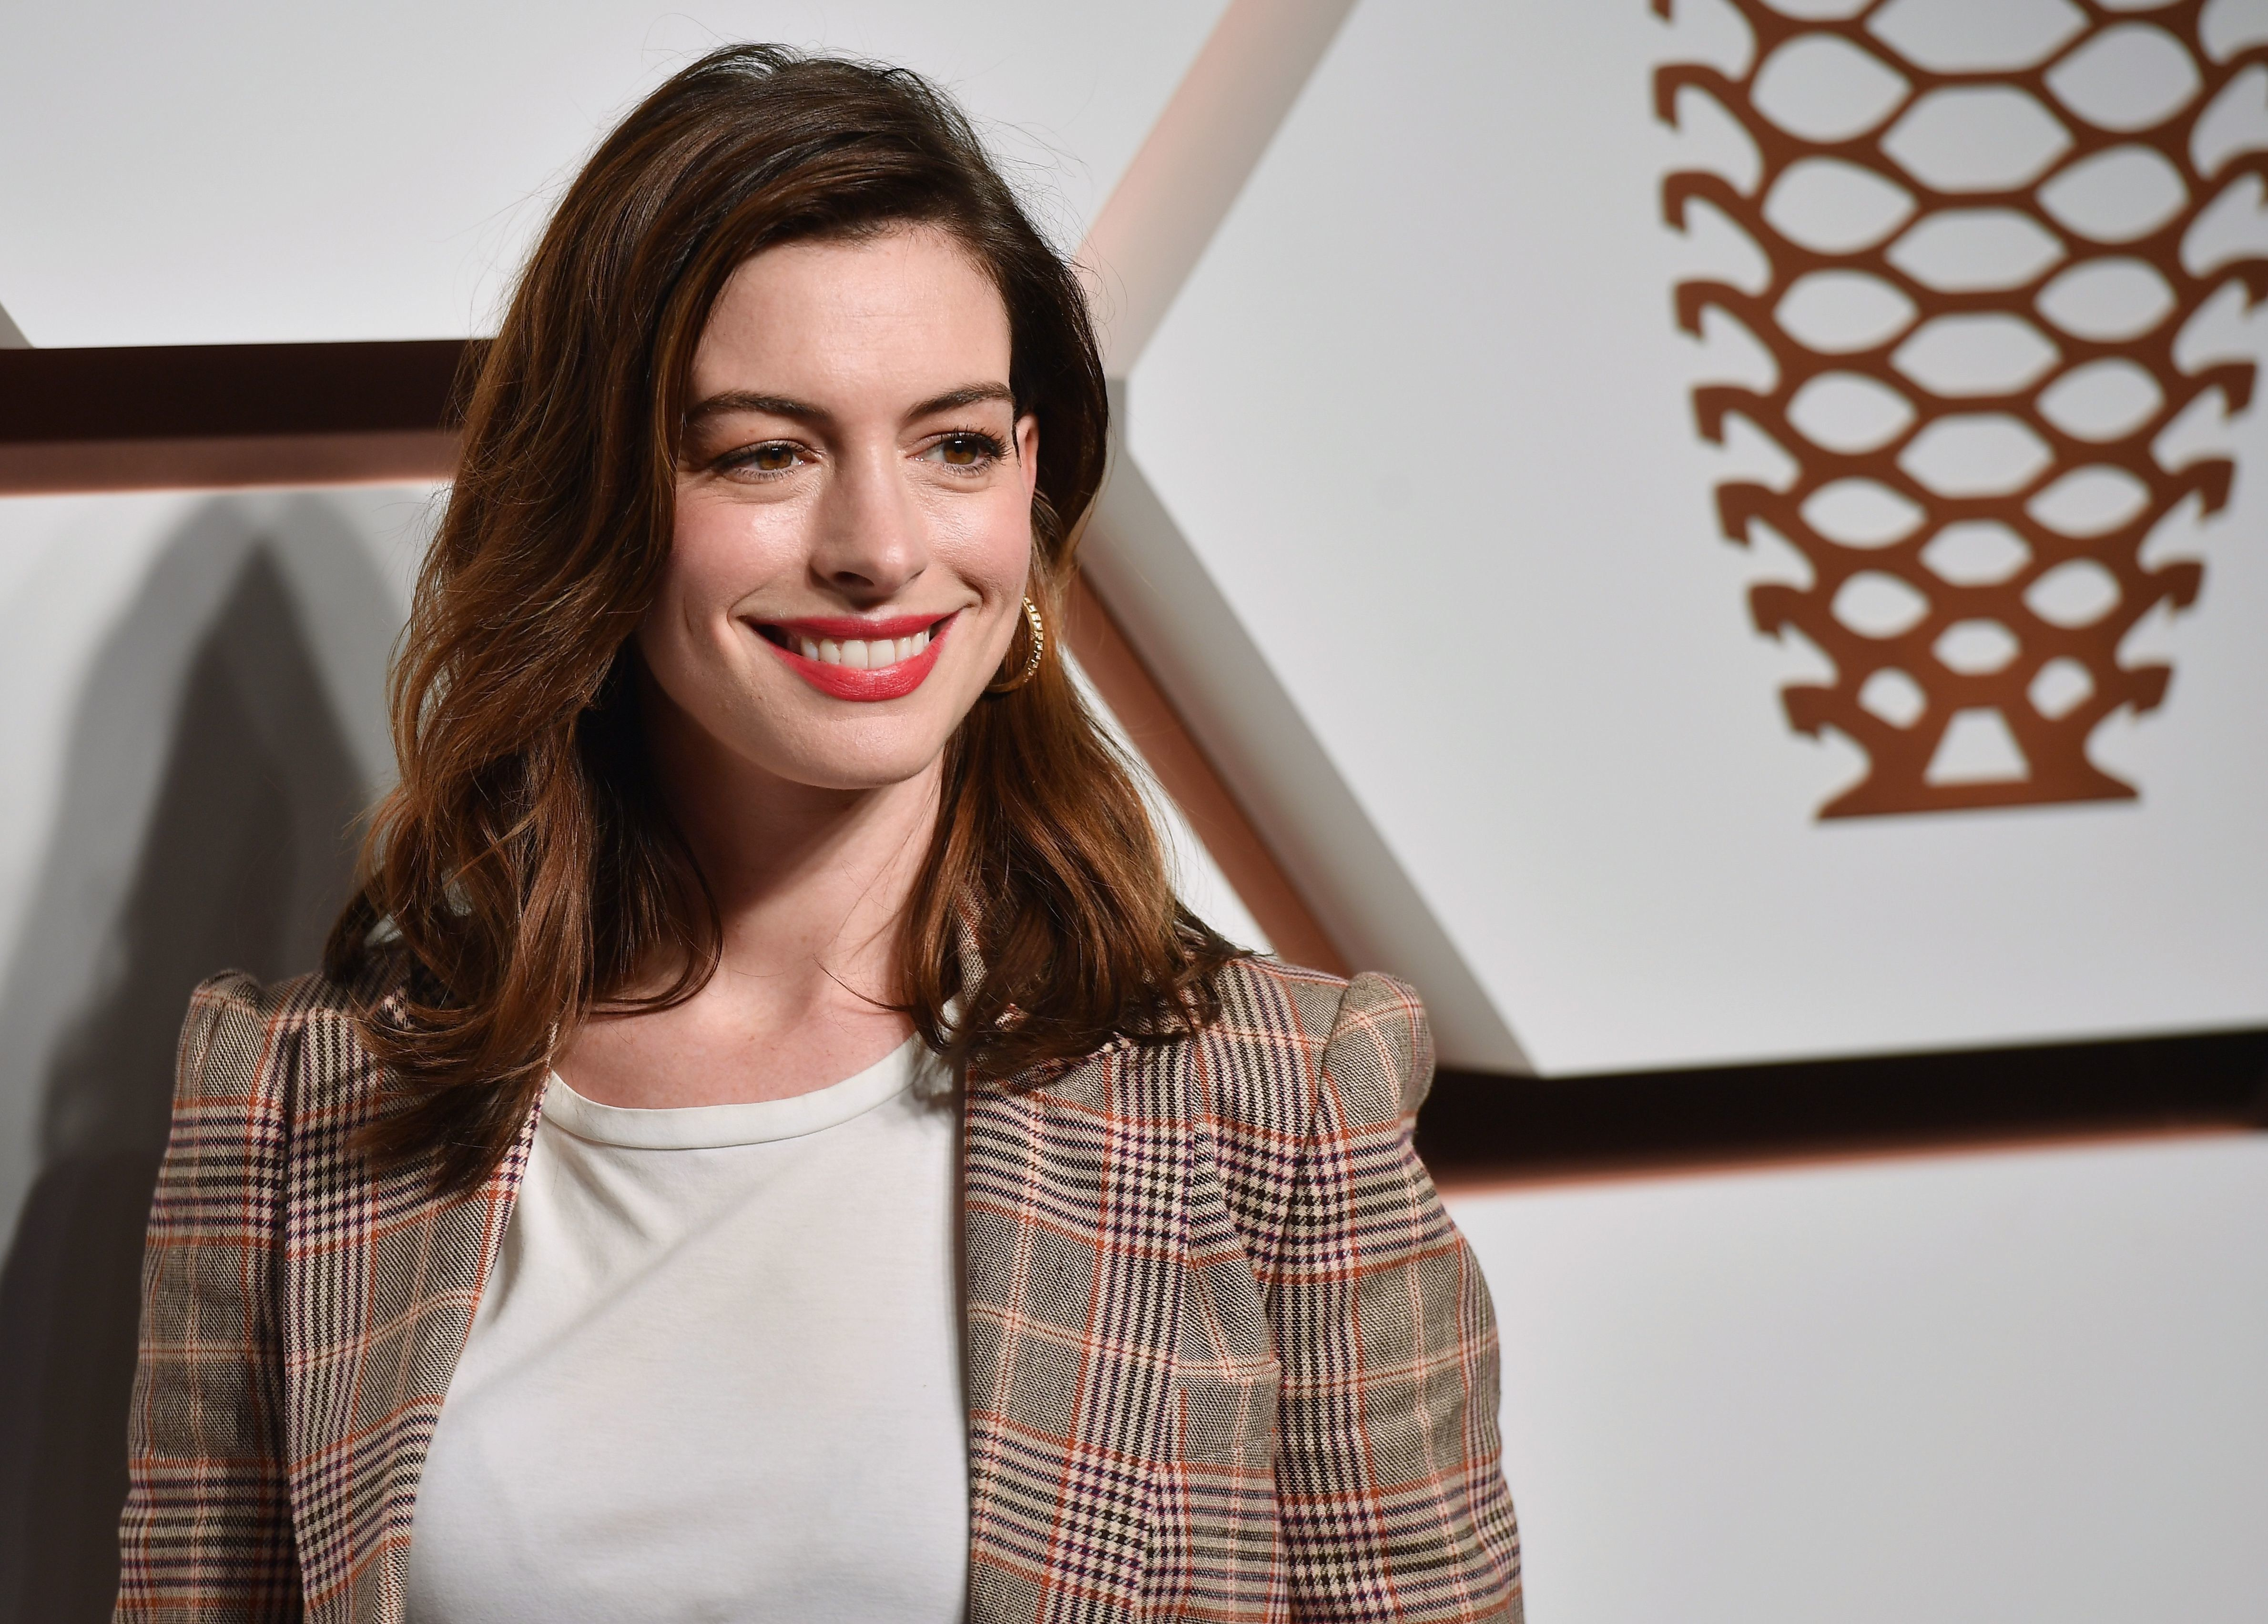 Anne Hathaway attends The Shops & Restaurants at Hudson Yards Preview Celebration Event on March 14 in New York City.&nbs